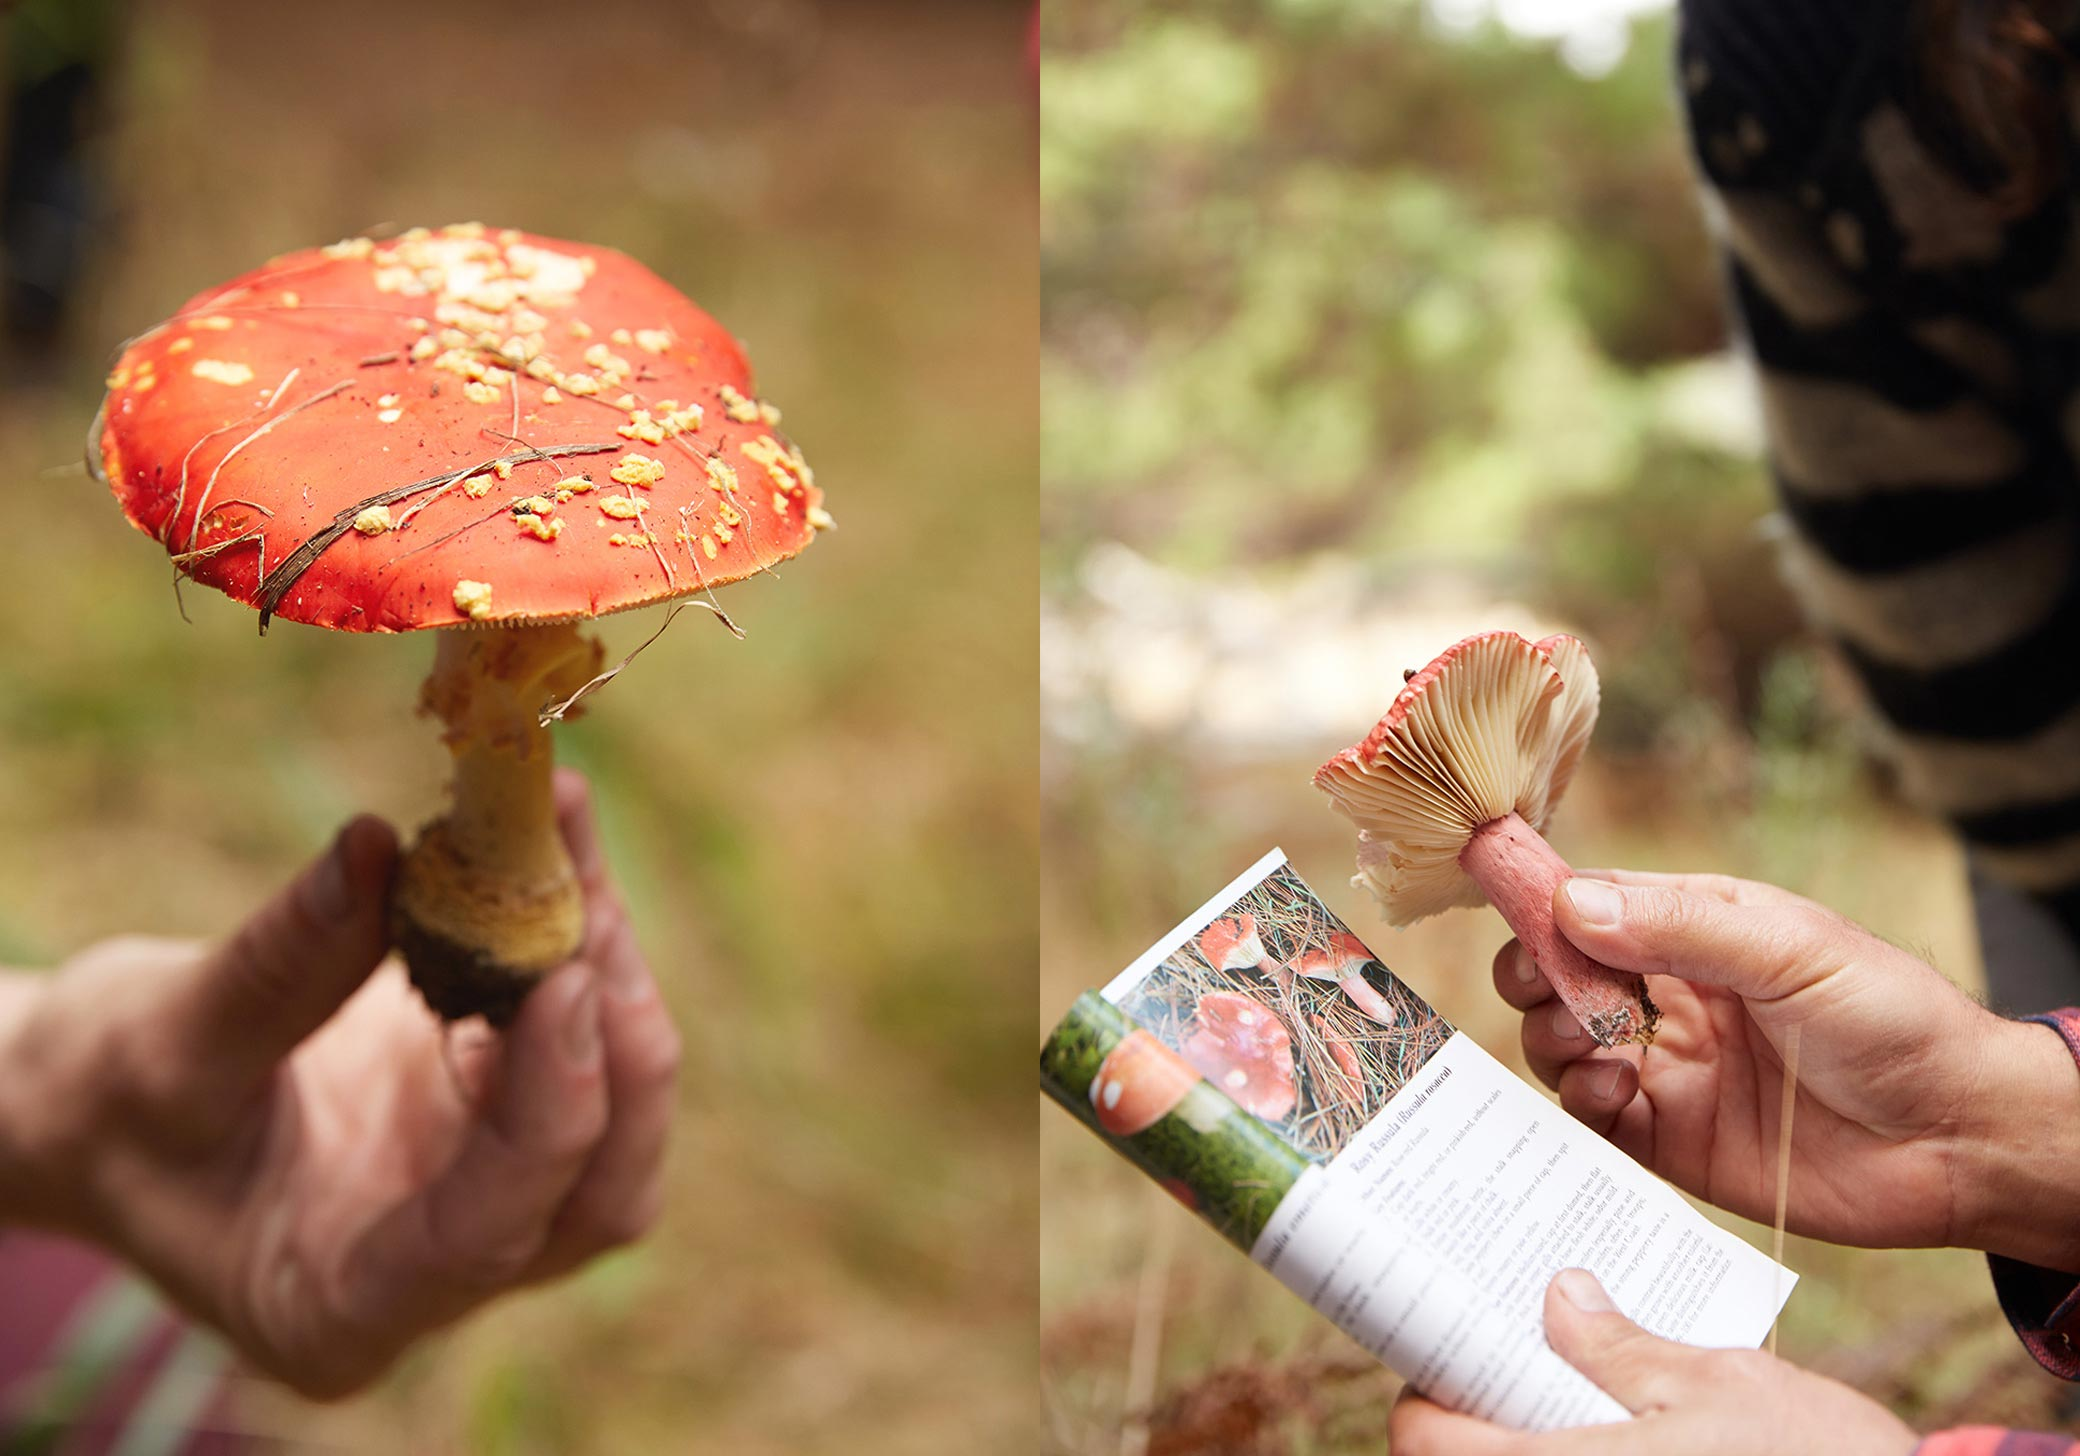 07_tiny-atlas-thayer-gowdy-mushroom-gathering-camping-guide-book_L.jpg